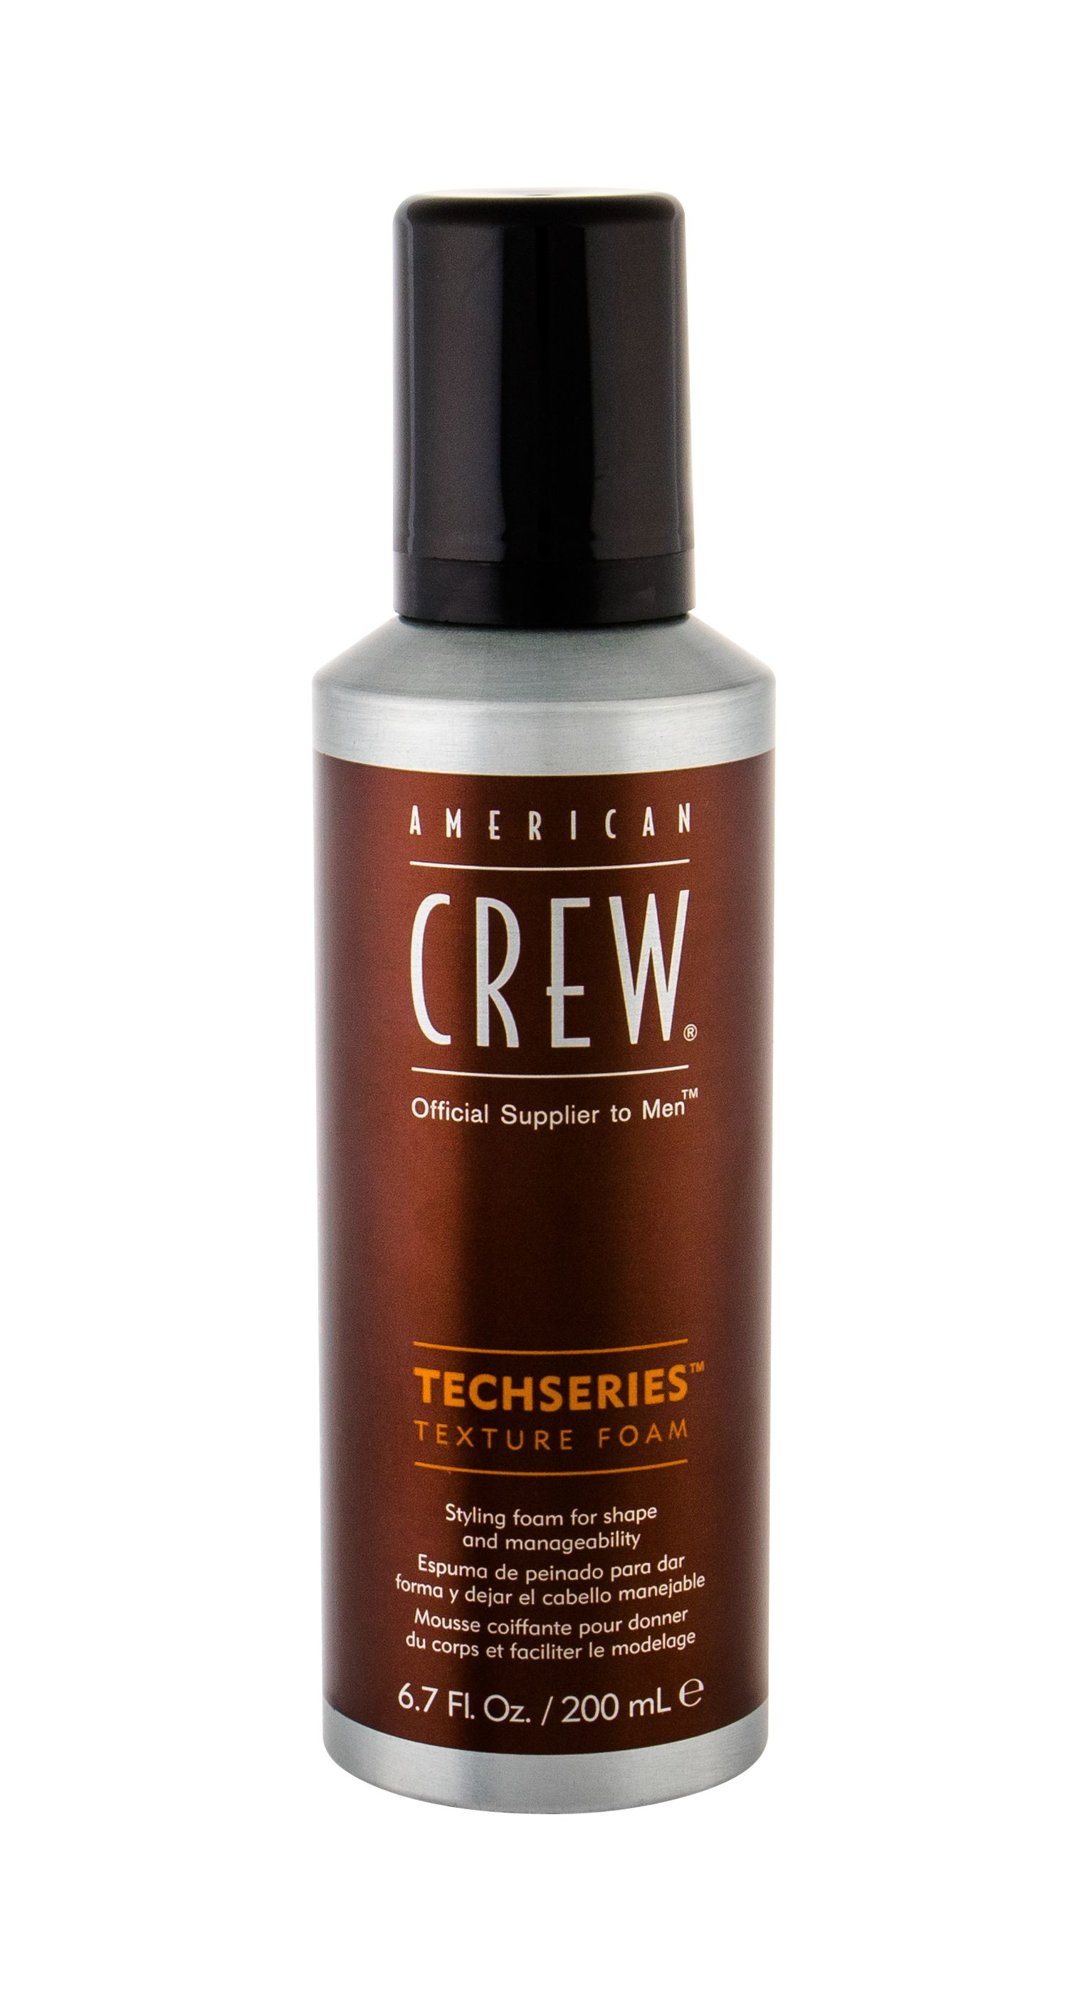 American Crew Techseries For Definition and Hair Styling 200ml